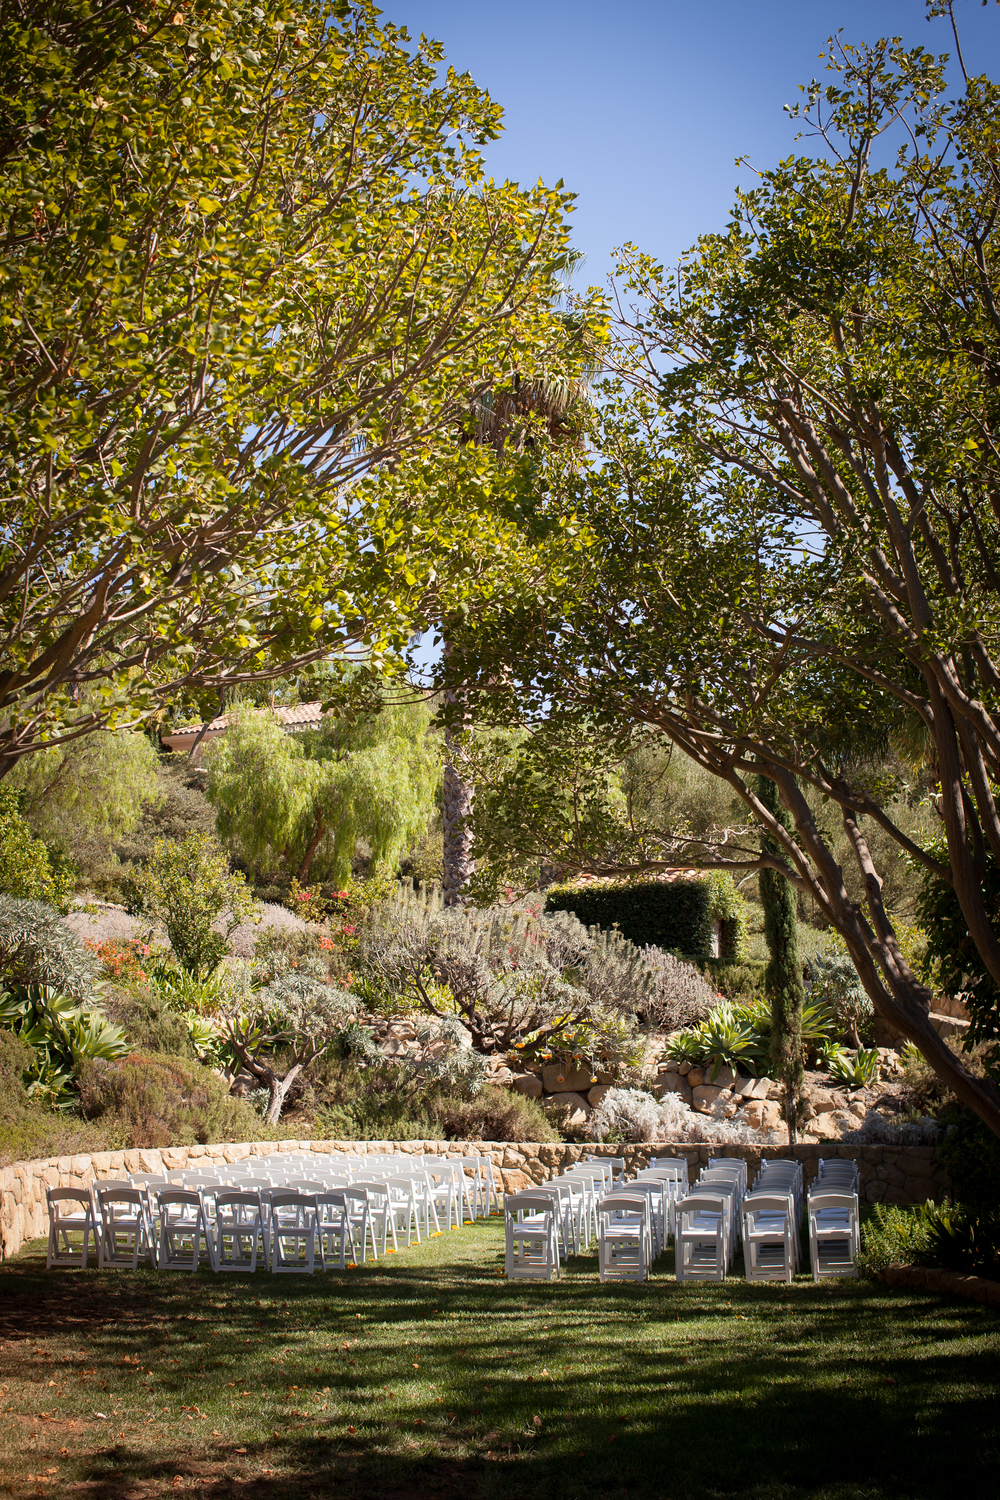 Santa Barbara Villa Verano Wedding - Hoste Events